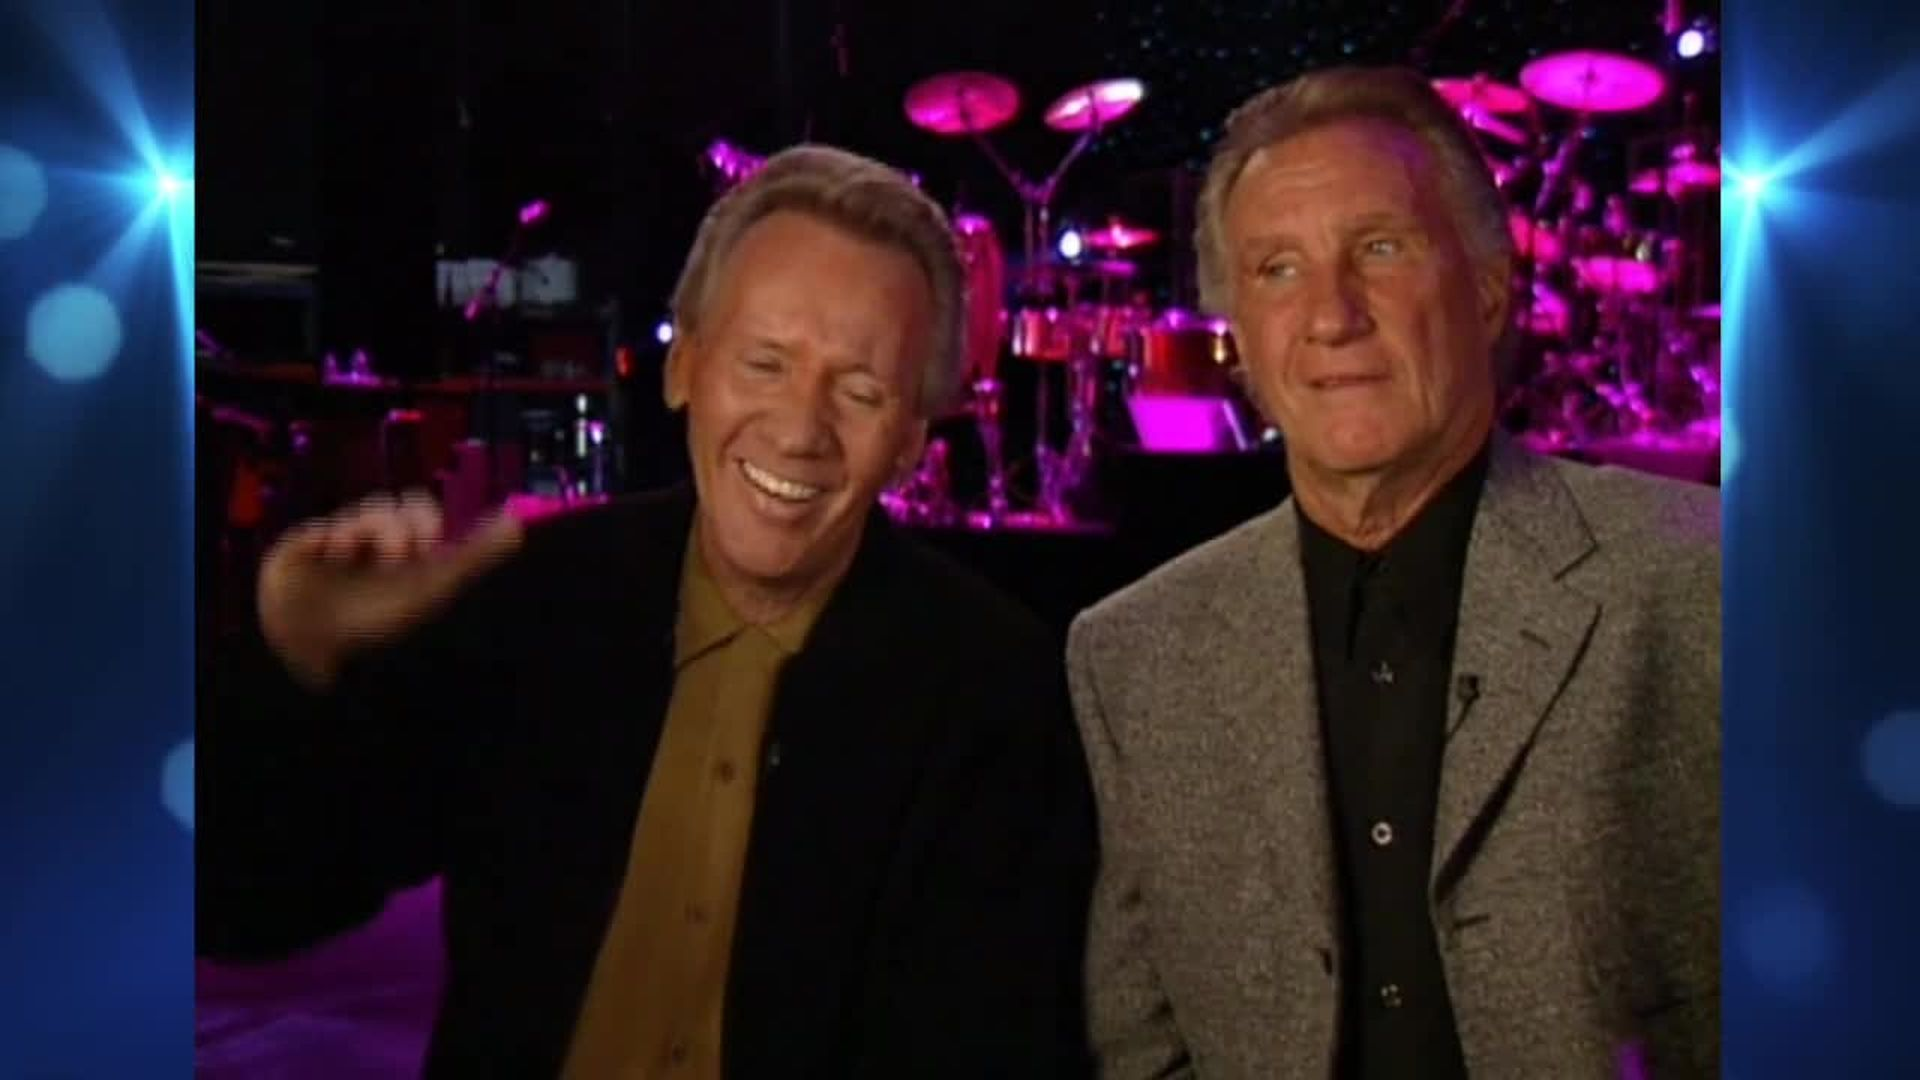 On Location: Las Vegas - The Righteous Brothers